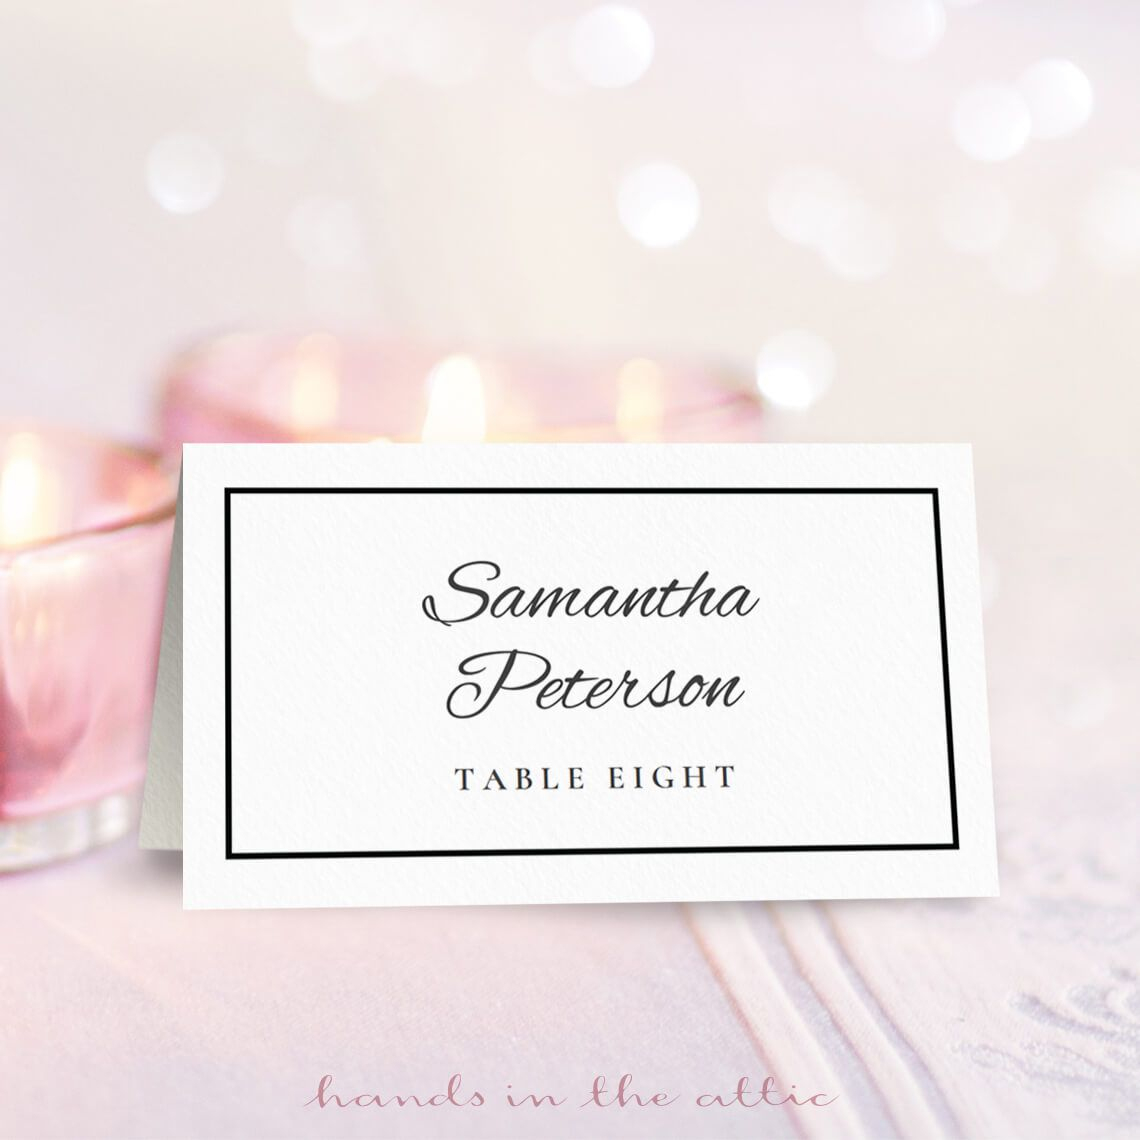 8 Sets Of Wedding Place Card Templates - Free Printable Place Cards Template